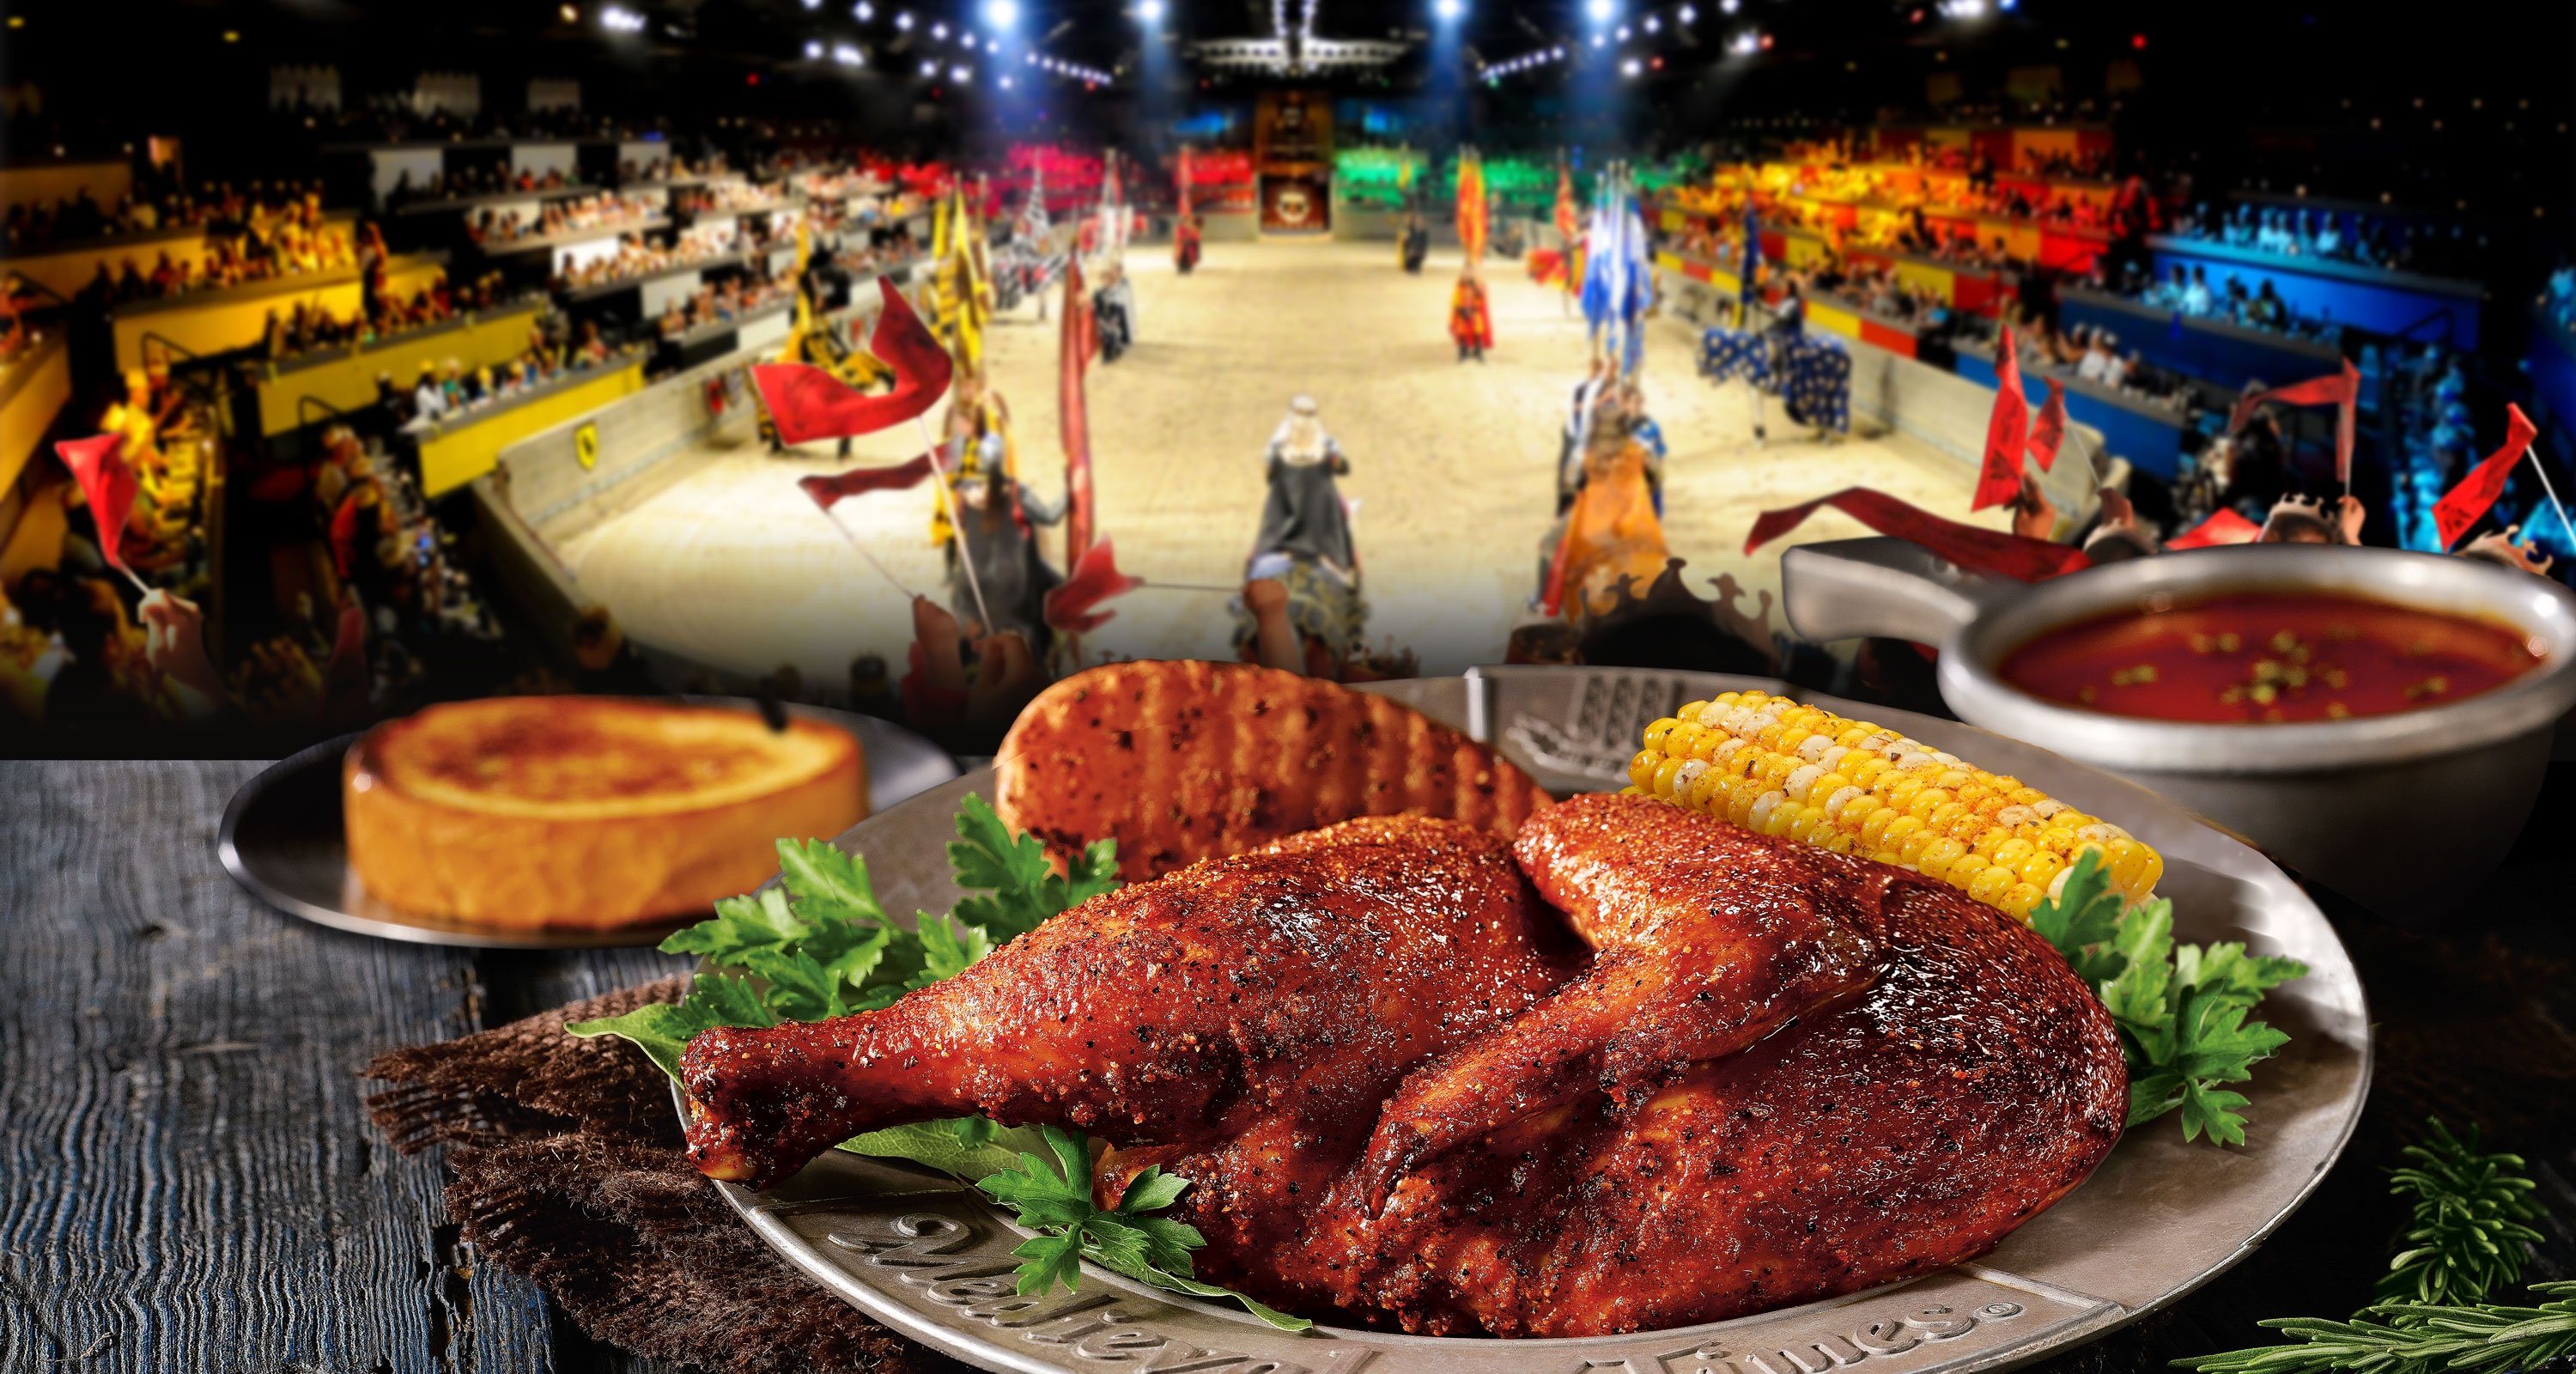 First Look: The Queen Reigns at Medieval Times | Tasty ...